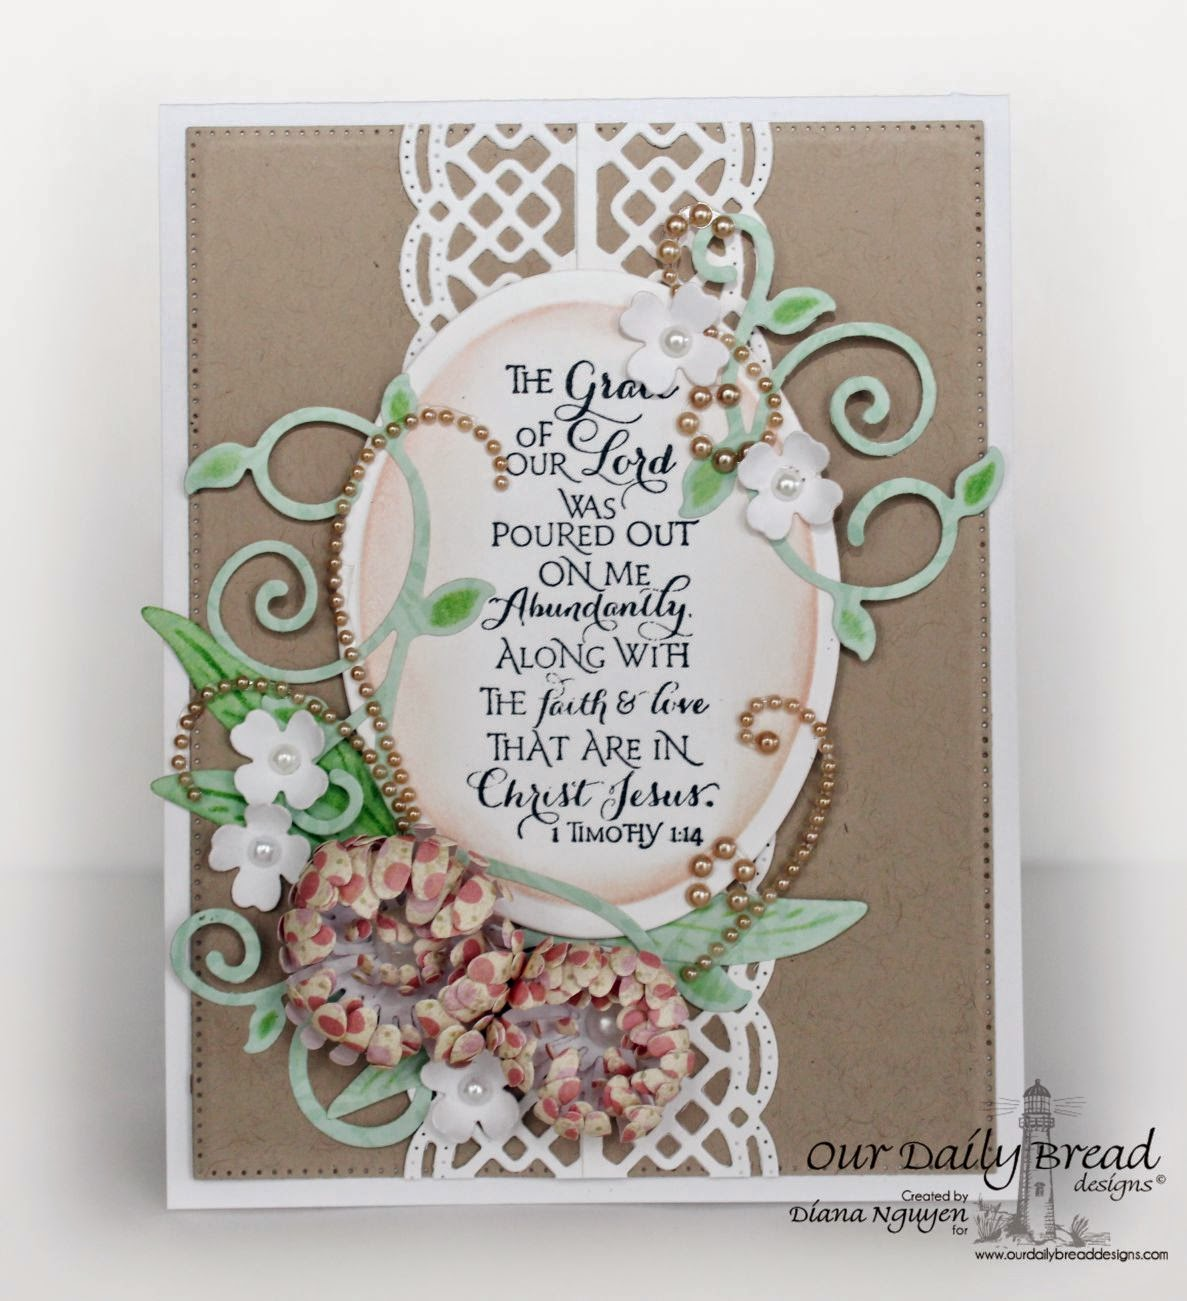 Our Daily Bread Designs, Fancy Foliage, Beautiful Borders, Scripture Collection 8, Blushing Rose Collection, Ornamental Crosses, Flourished Star Pattern Die, Aster Dies,  Designed by Diana Nguyen